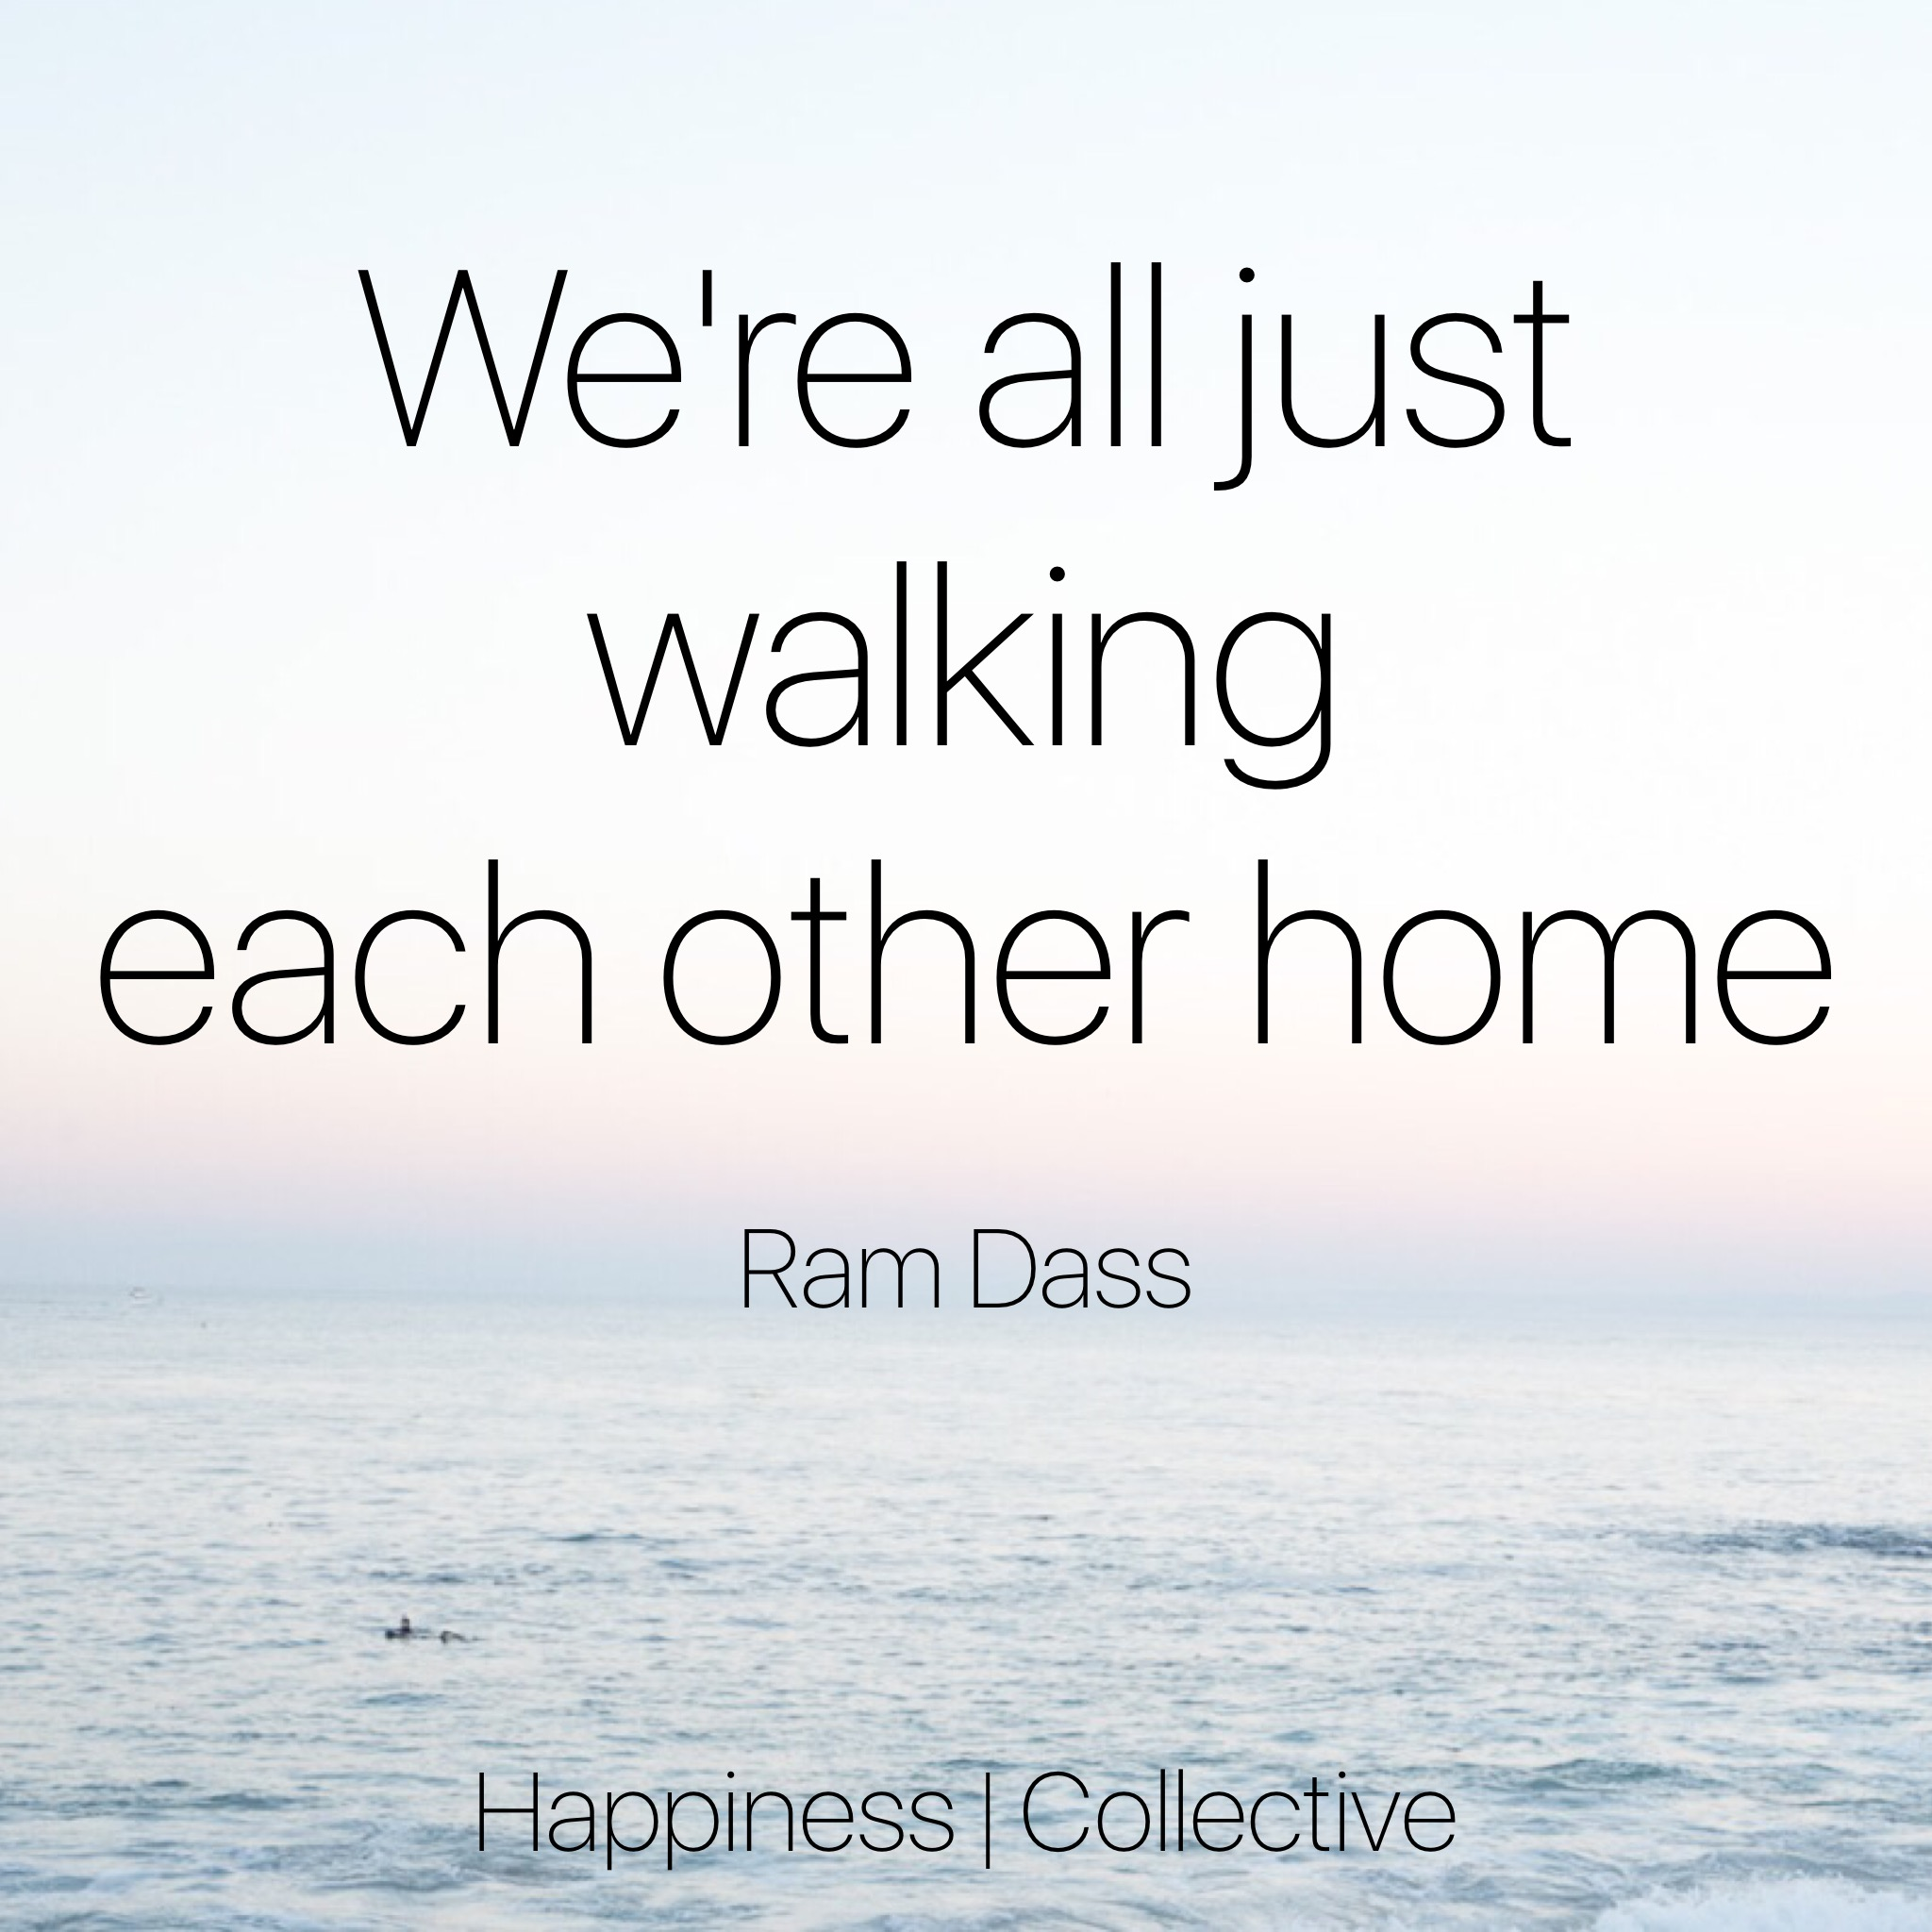 We're all just walking each other home. -Ram Dass